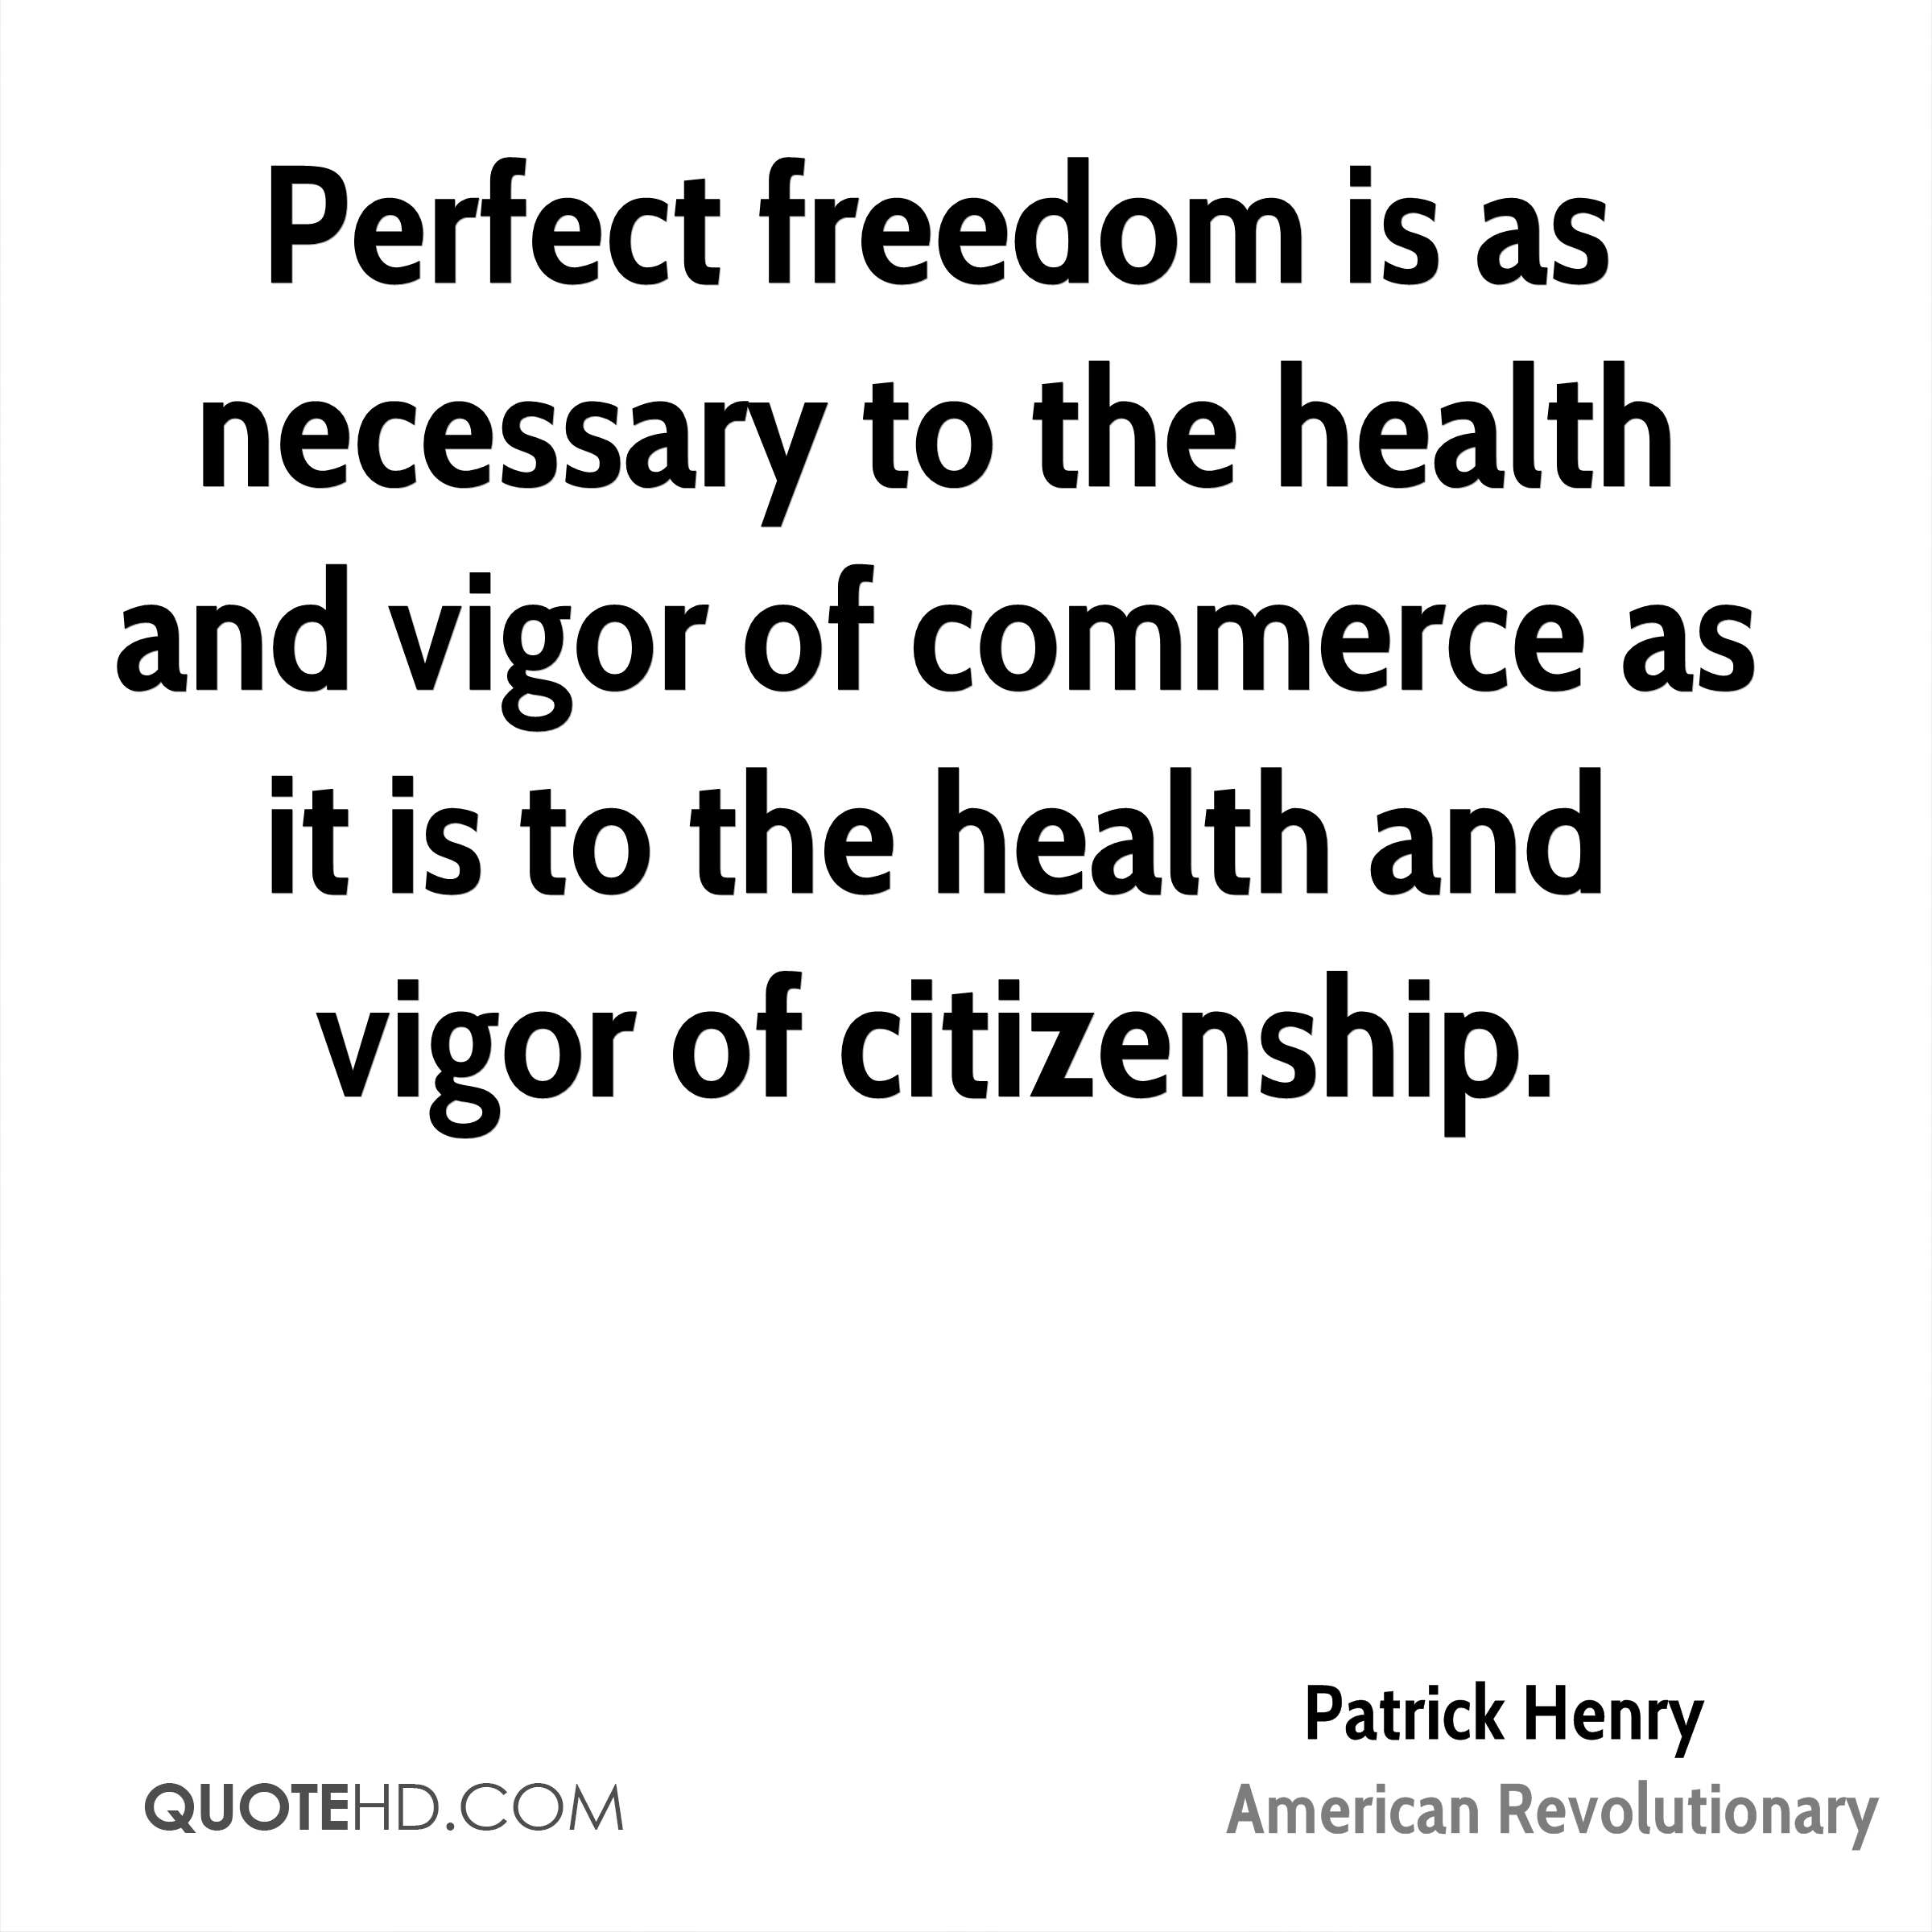 Perfect freedom is as necessary to the health and vigor of commerce as it is to the health and vigor of citizenship.